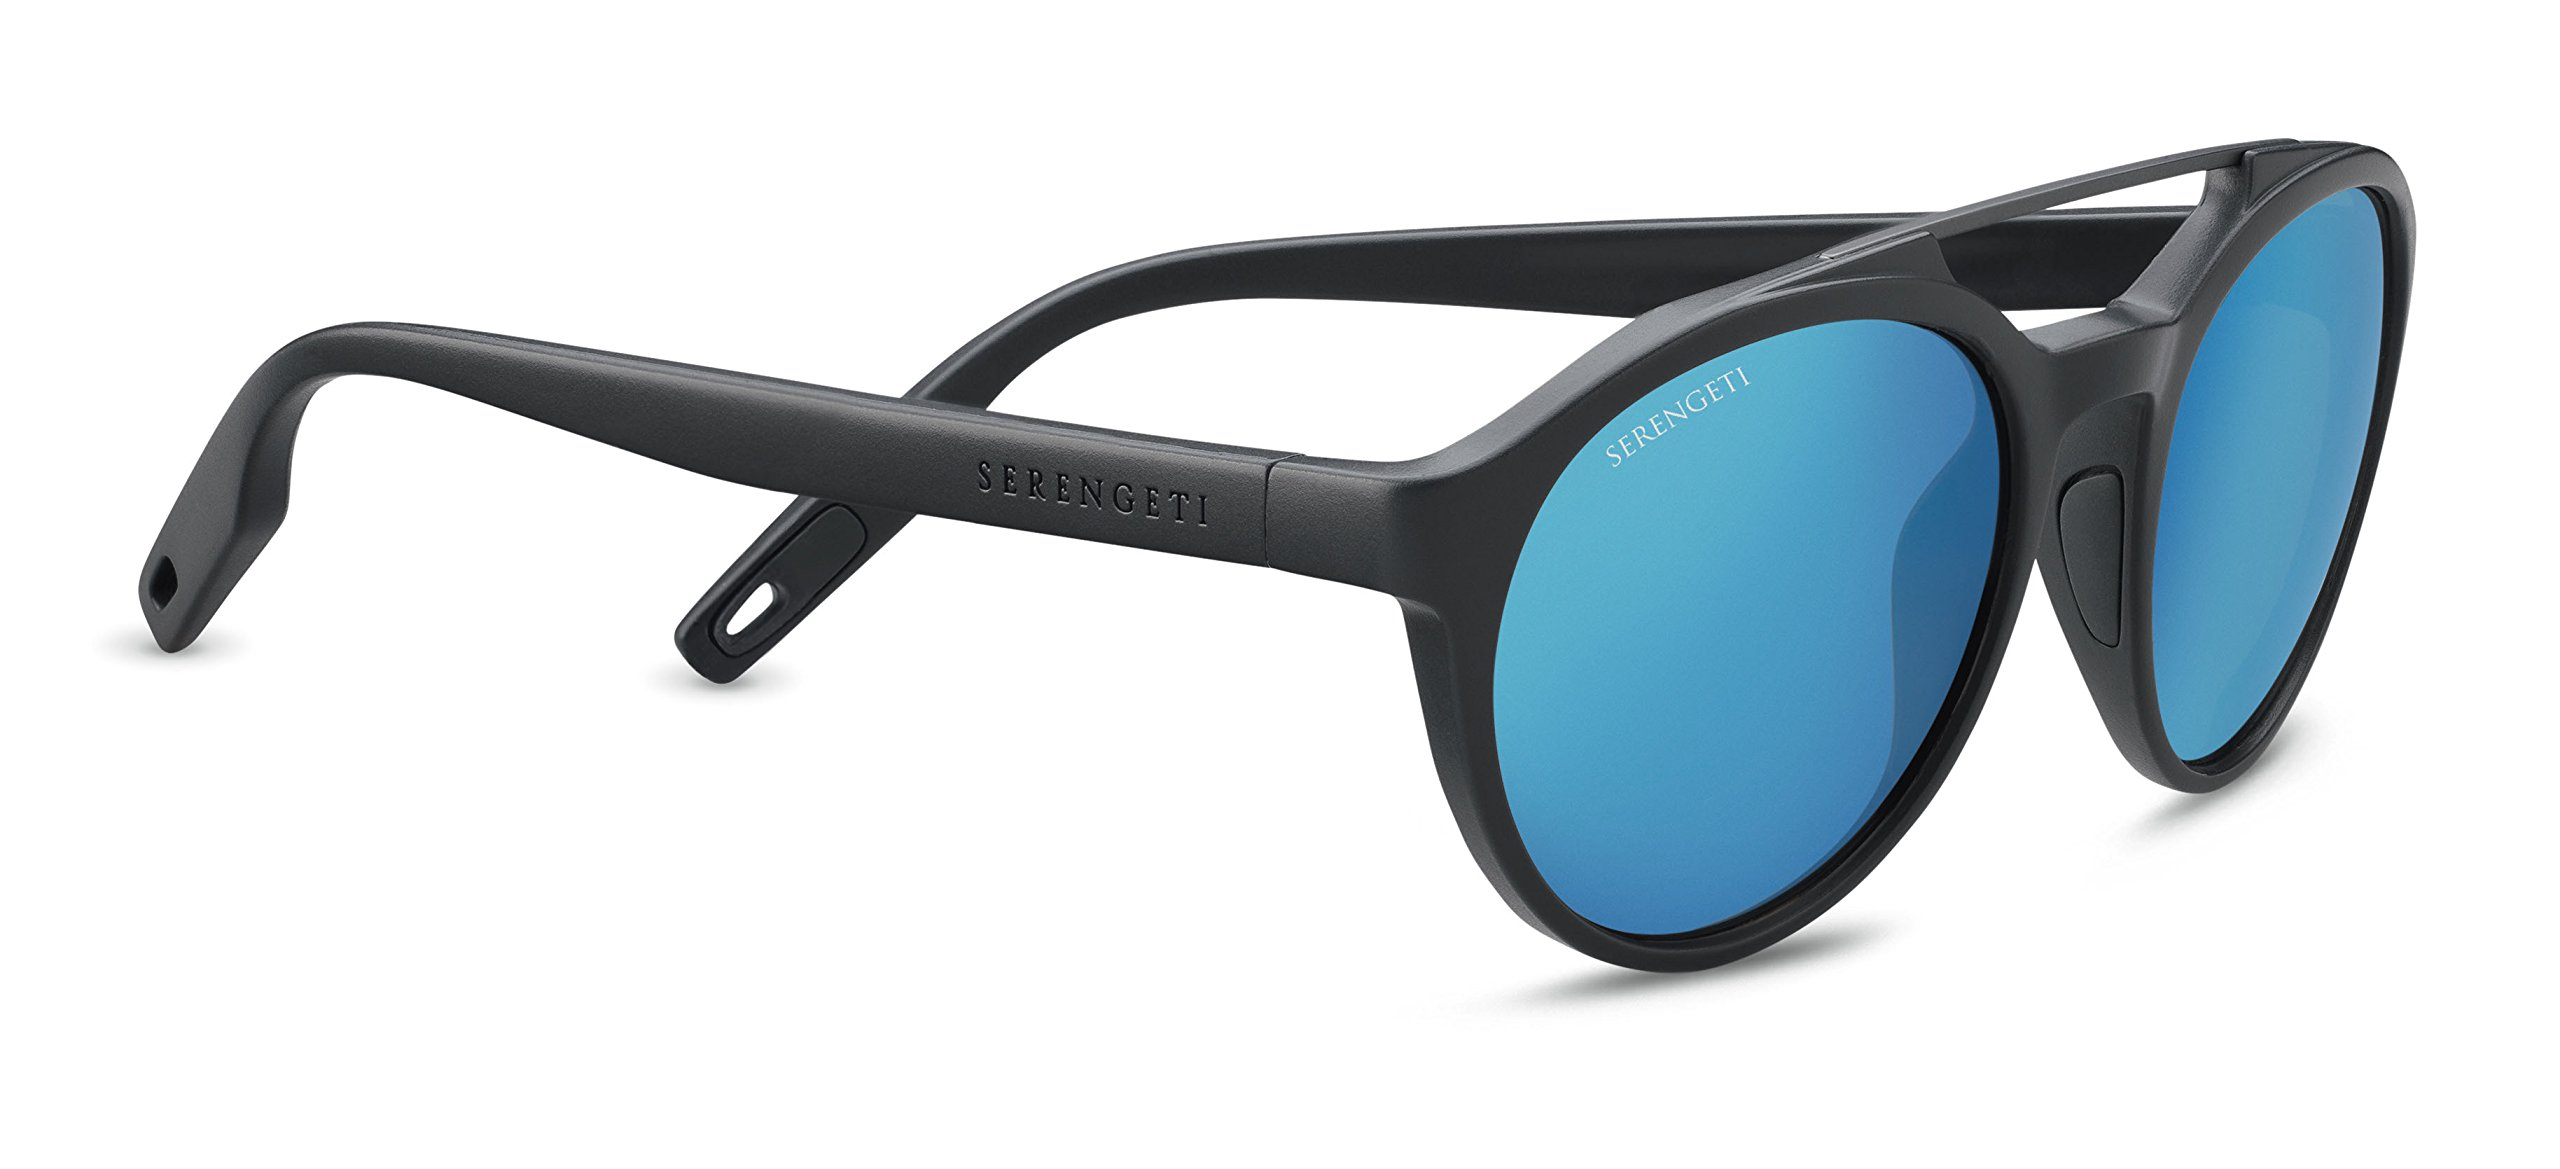 Serengeti Leandro Sunglasses Satin Dark Grey/Satin Dark Gunmetal, Blue